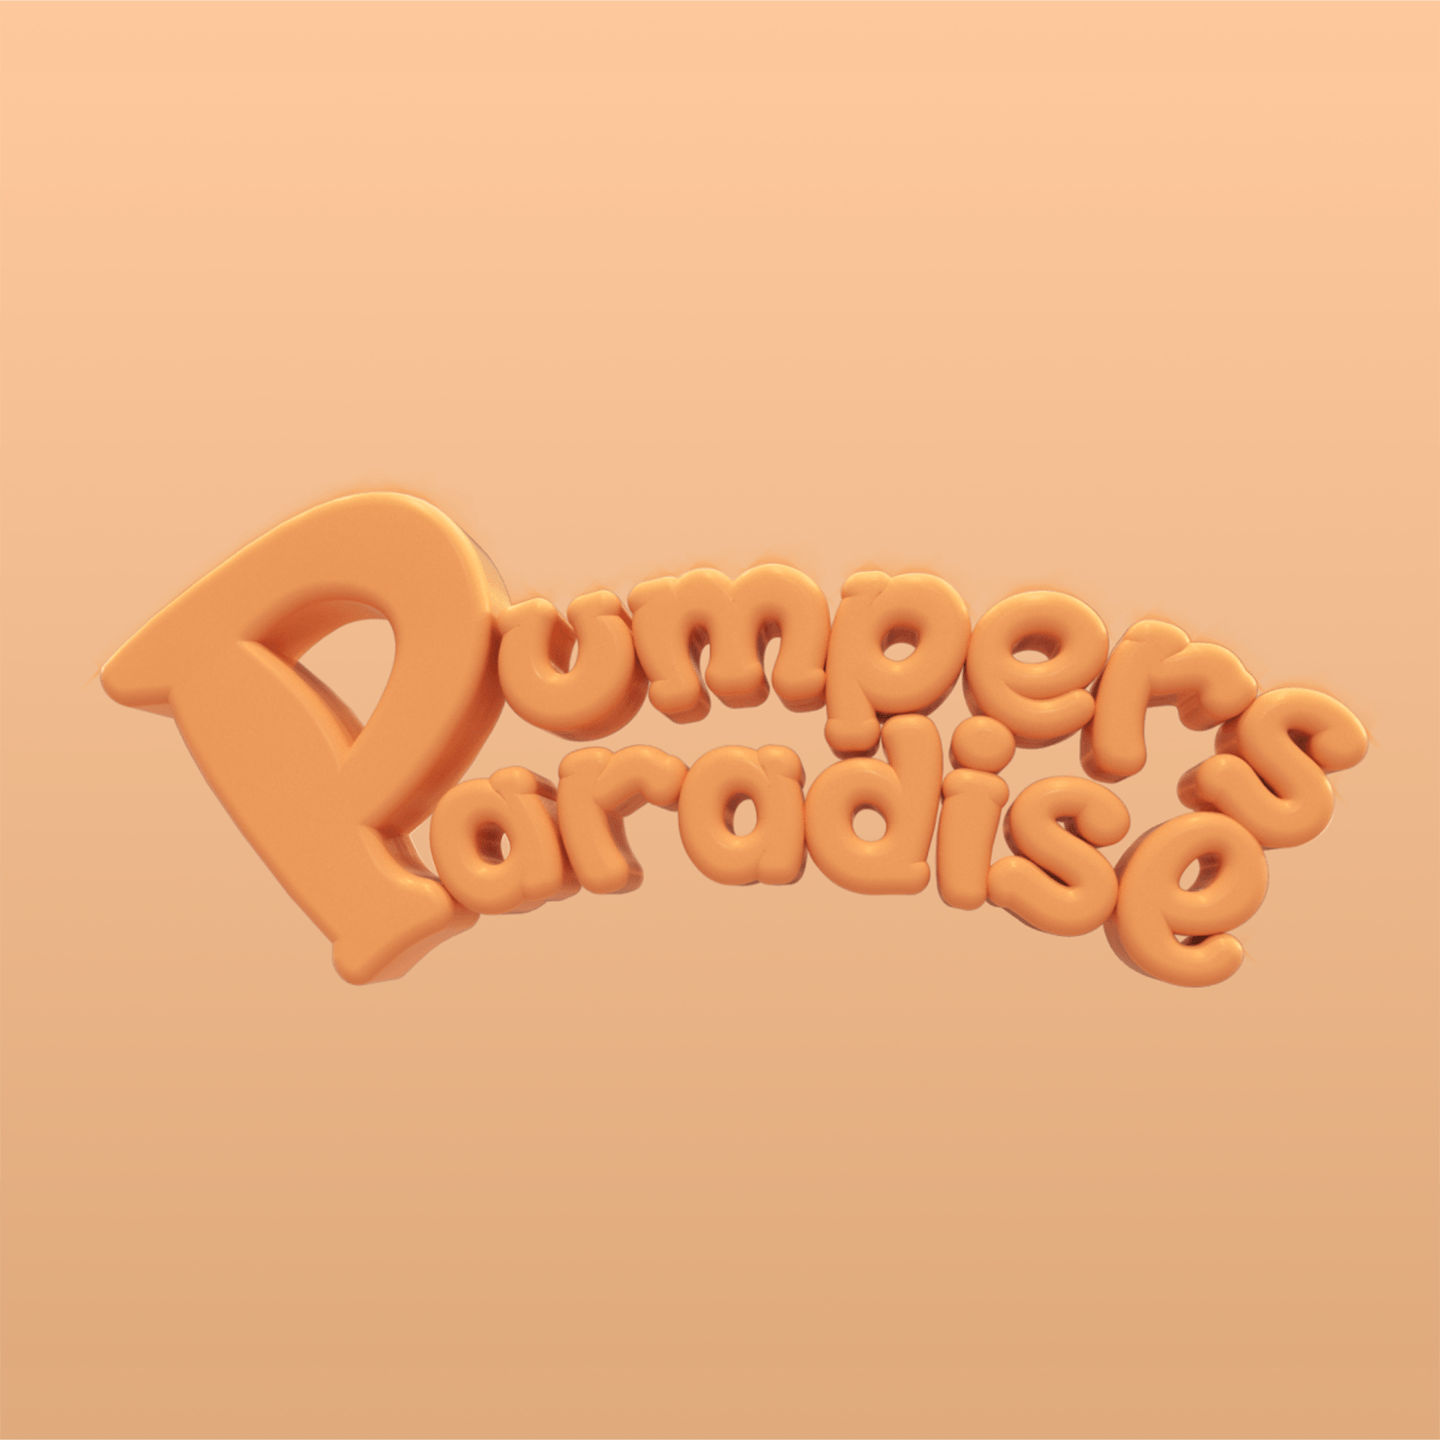 Pumpers Paradise (2019) - Title Design